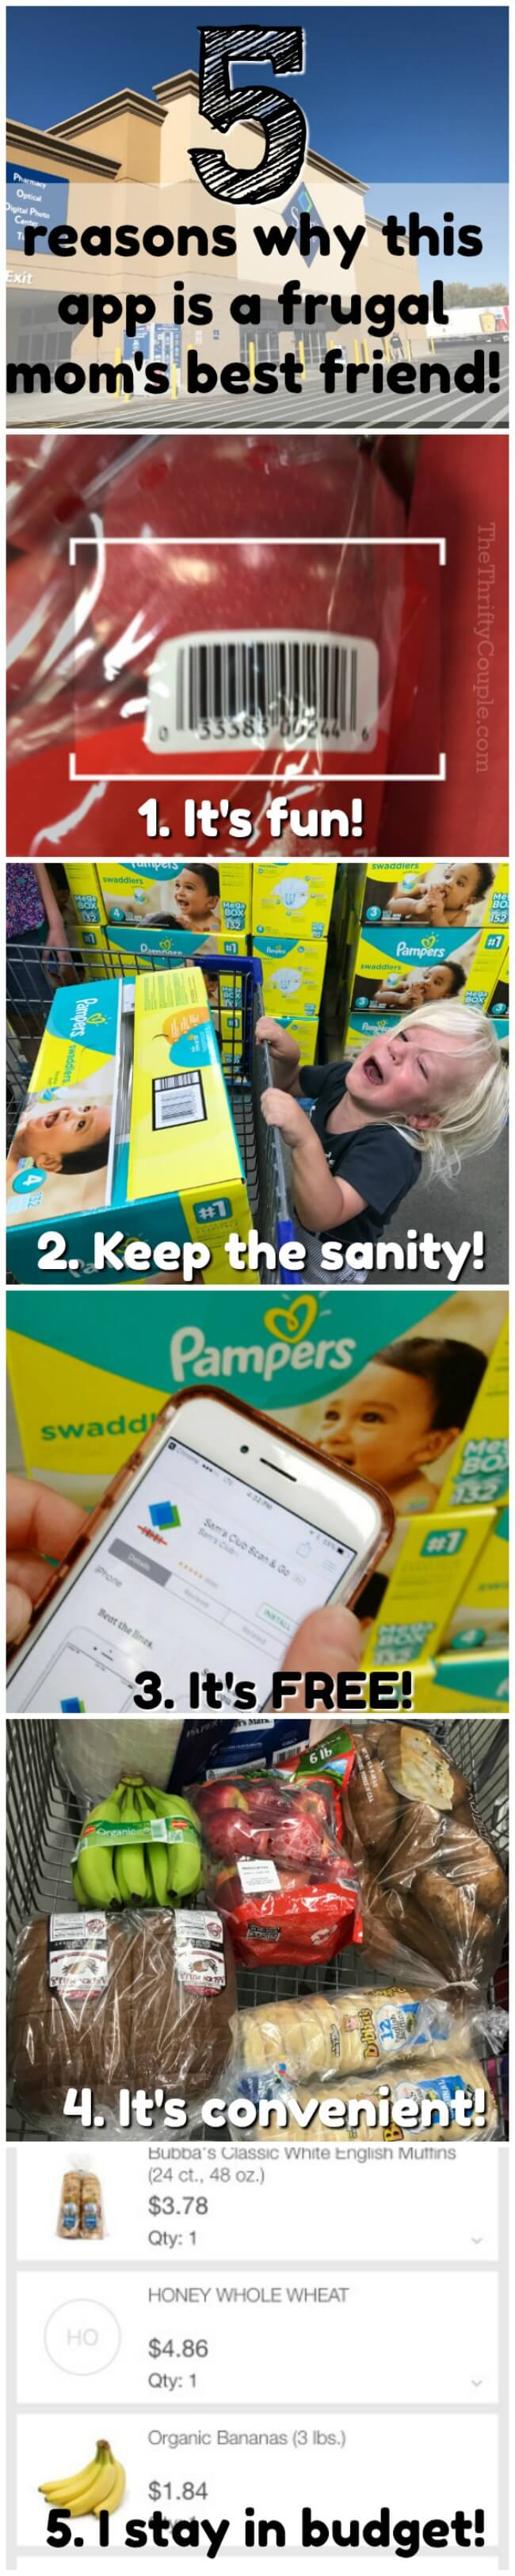 5 Reasons Why The Sam's Club Scan and Go App is a Frugal